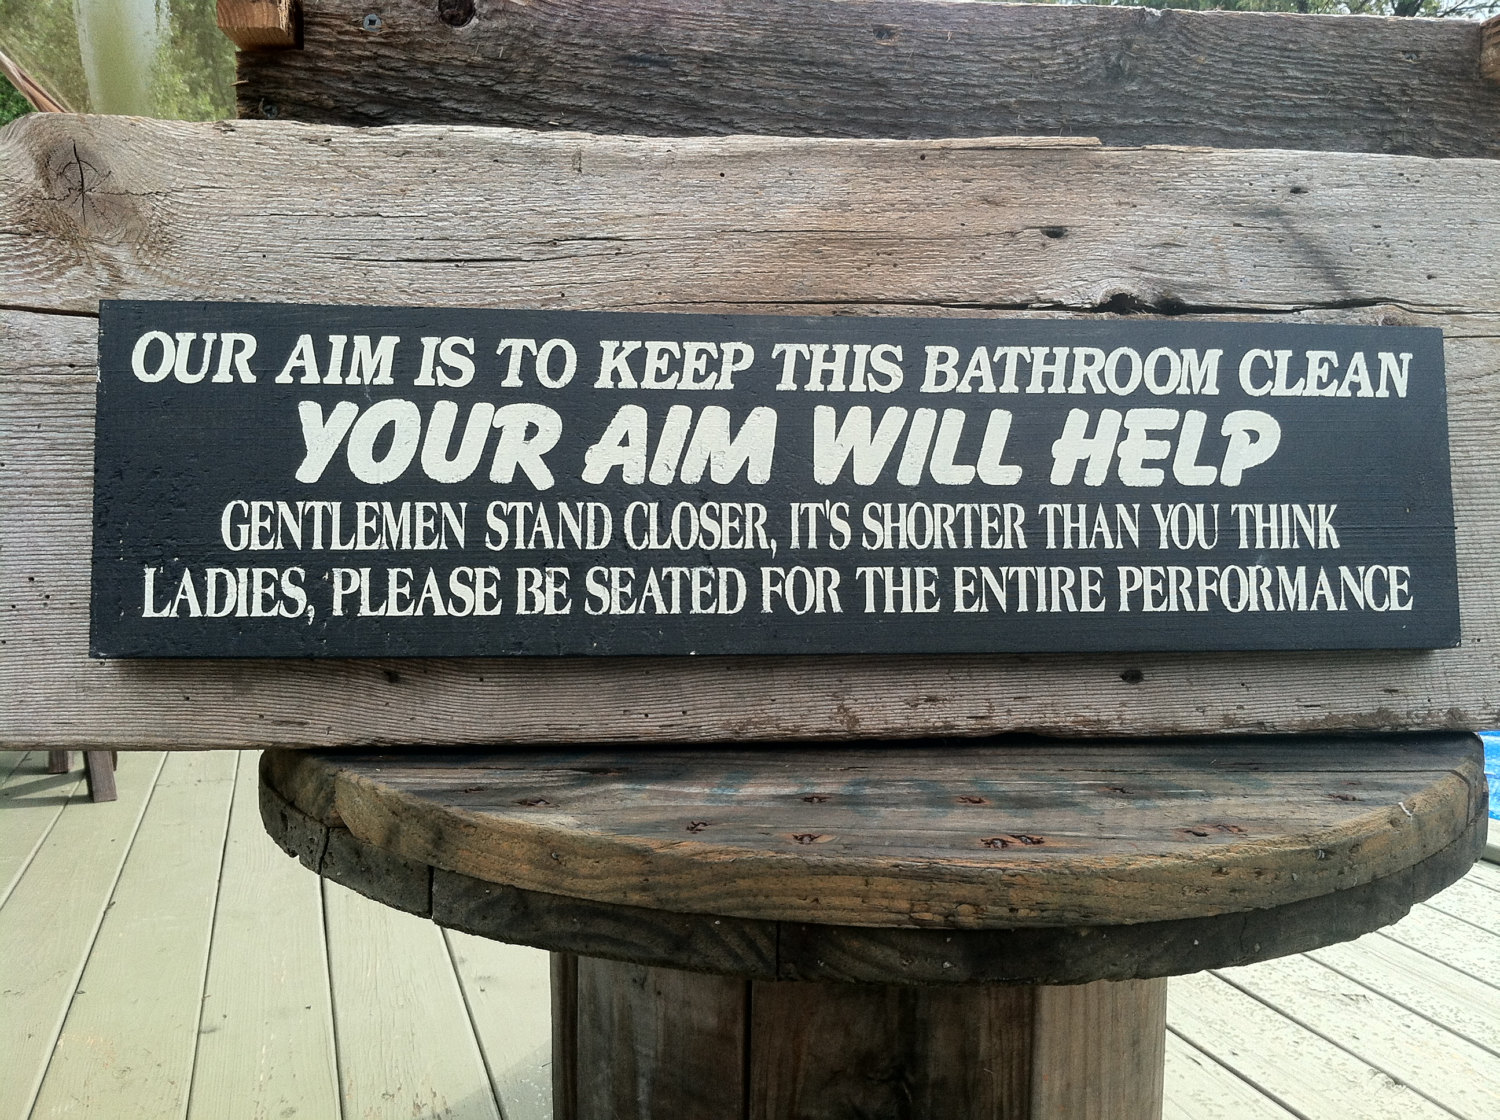 Bathroom Signs We Aim To Please our aim is to keep this bathroom clean. your aim will help. stand